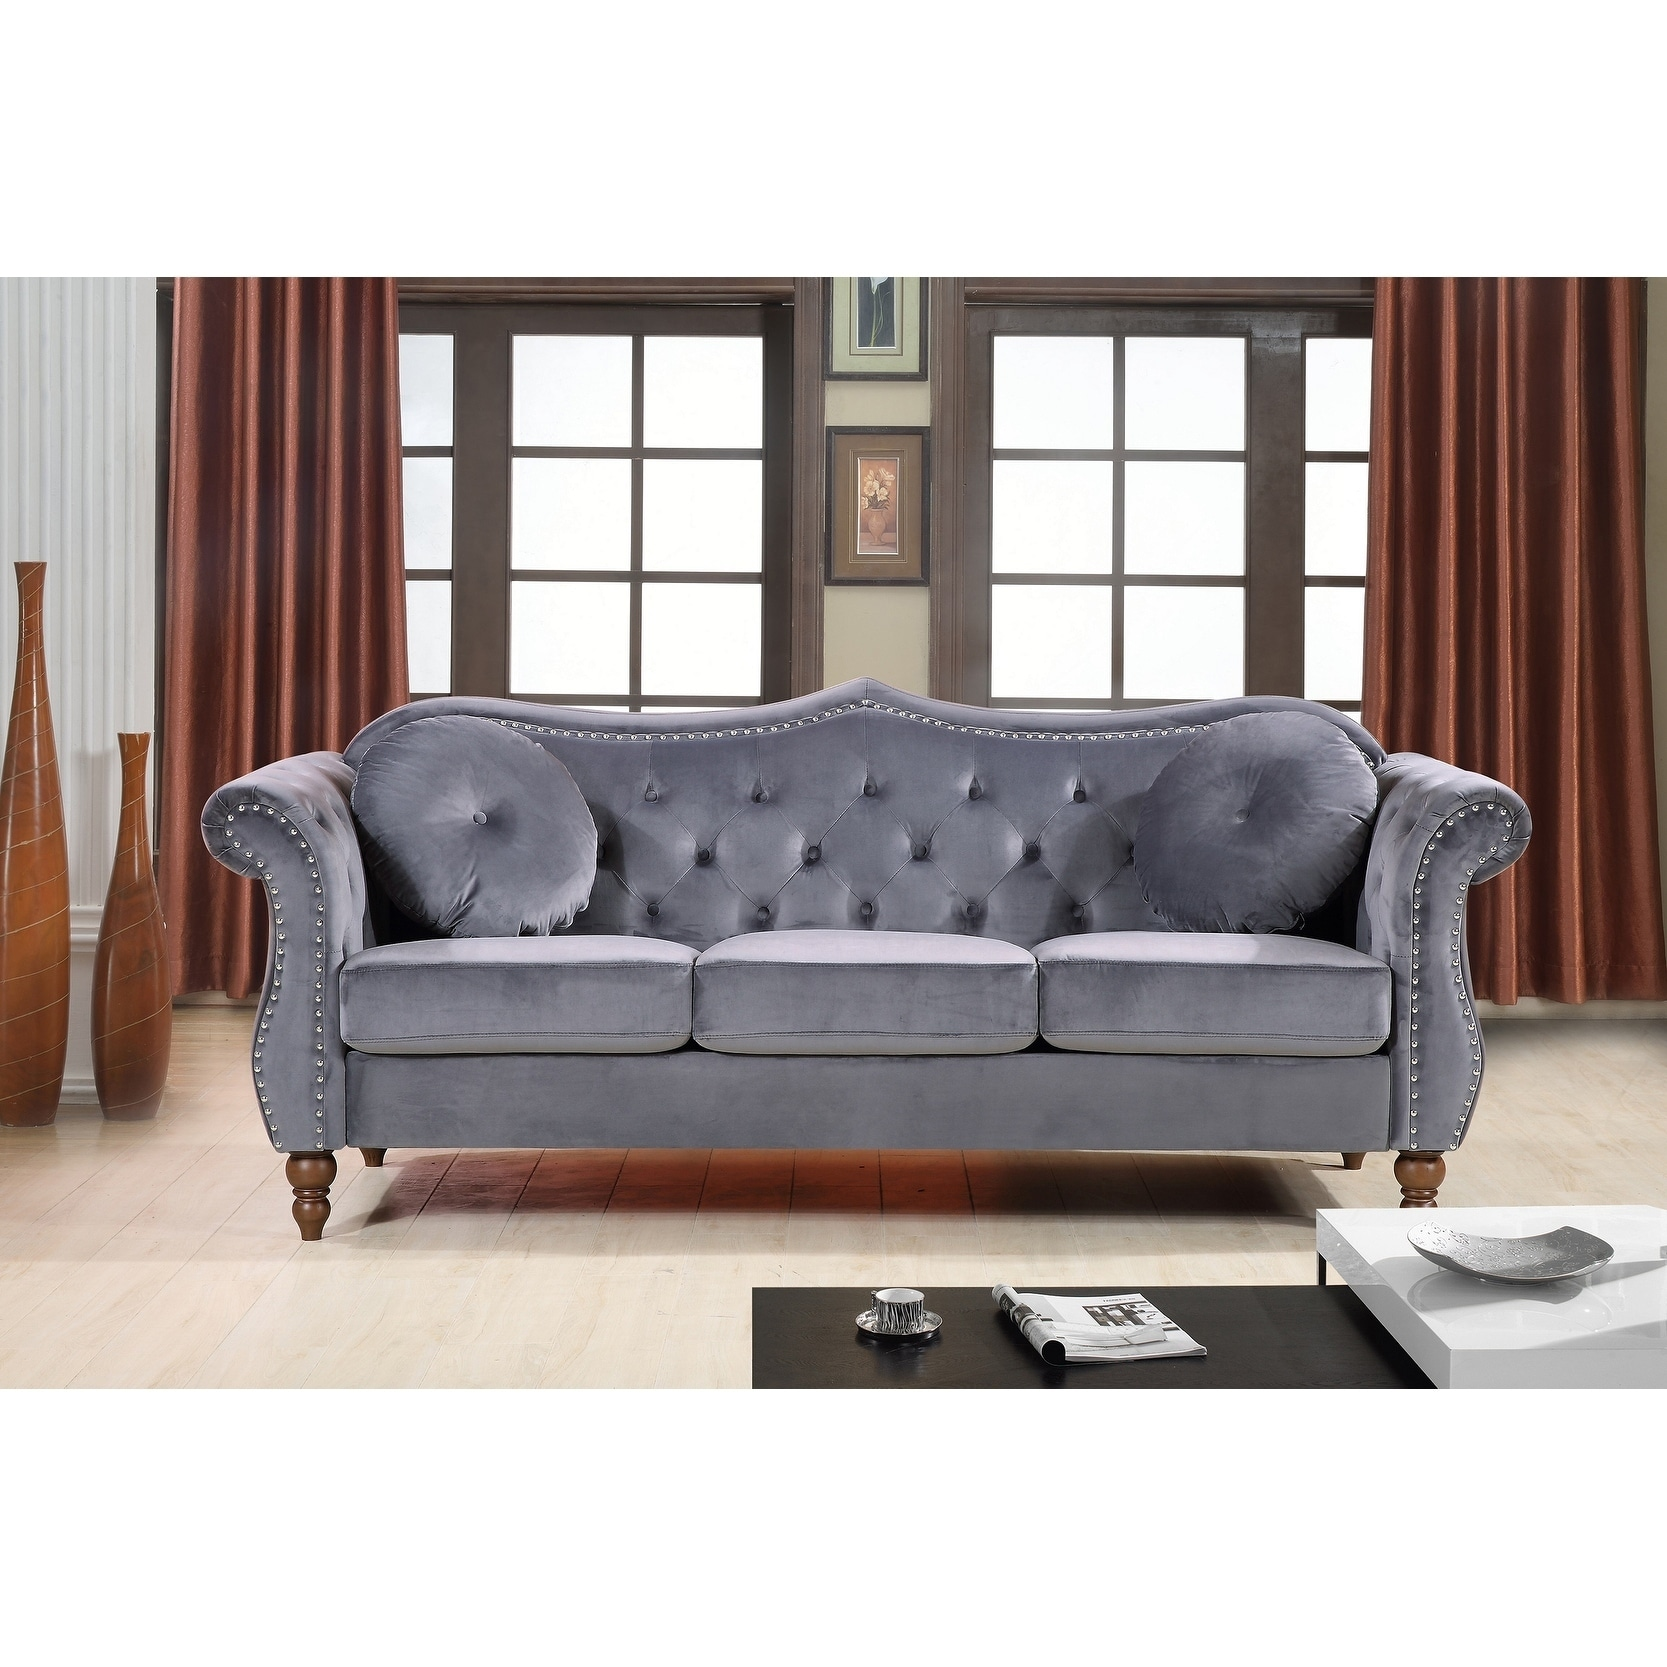 Pleasing Gracewood Hollow Mantel Mid Century Nailhead Chesterfield Sofa 89 X 129 Pabps2019 Chair Design Images Pabps2019Com